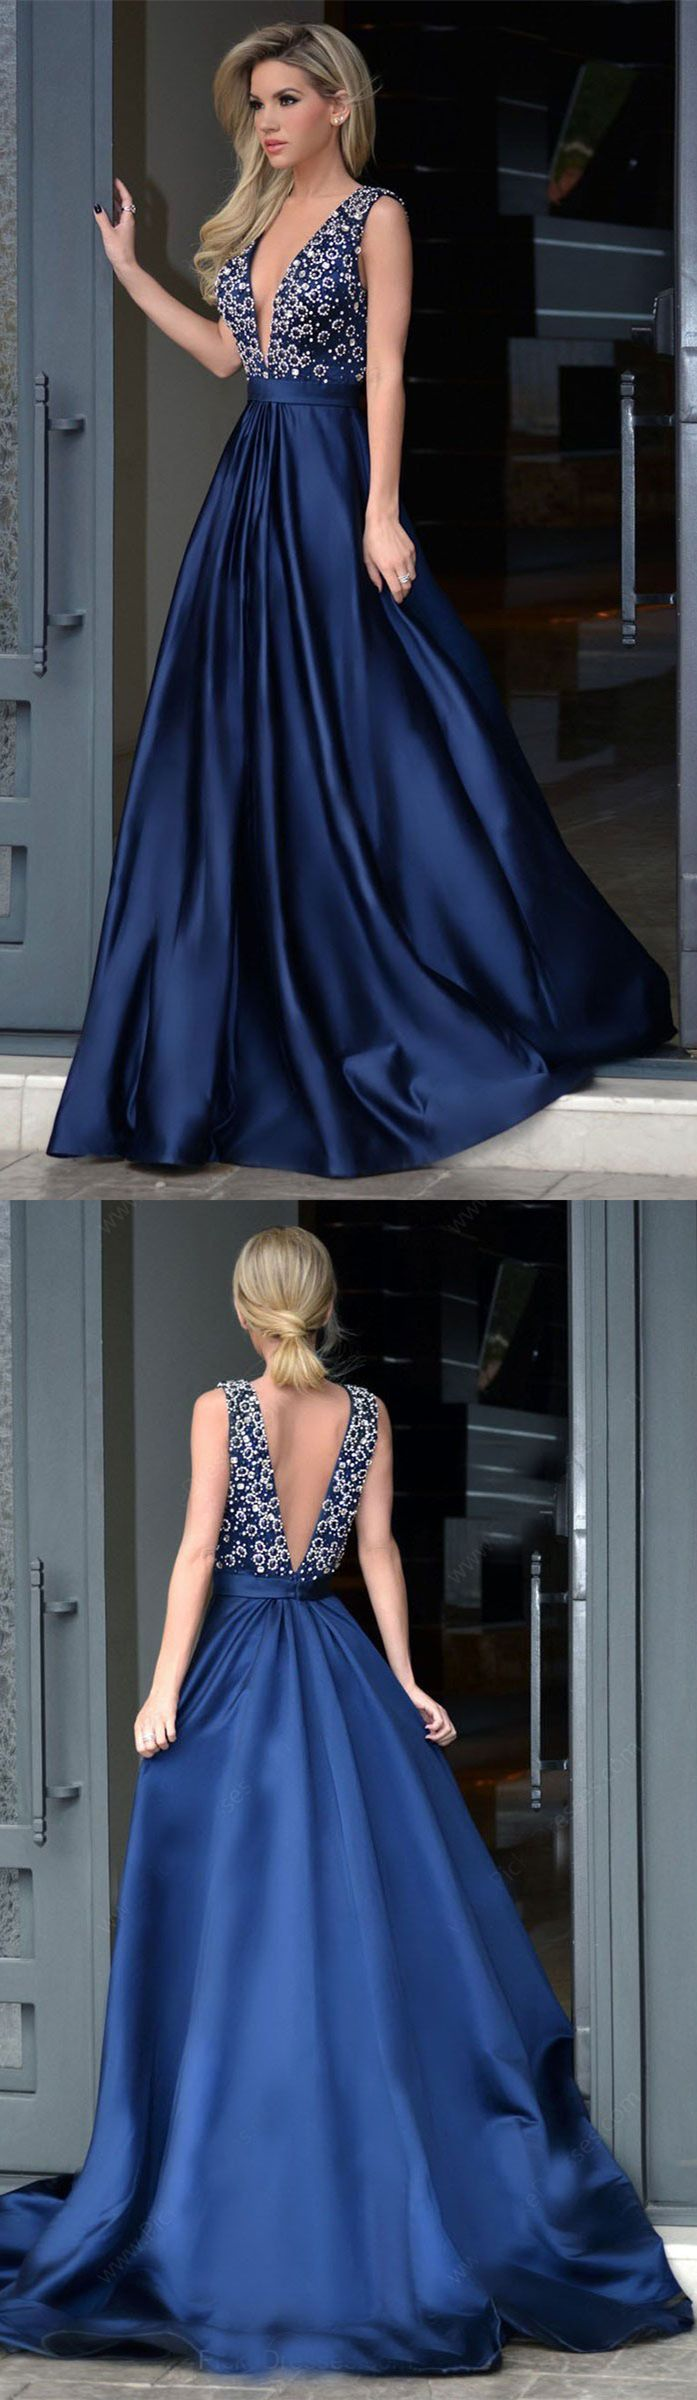 Navy blue 2018 prom dresses,long prom dresses with embelishment of beads,#sheergirl,pageant dresses